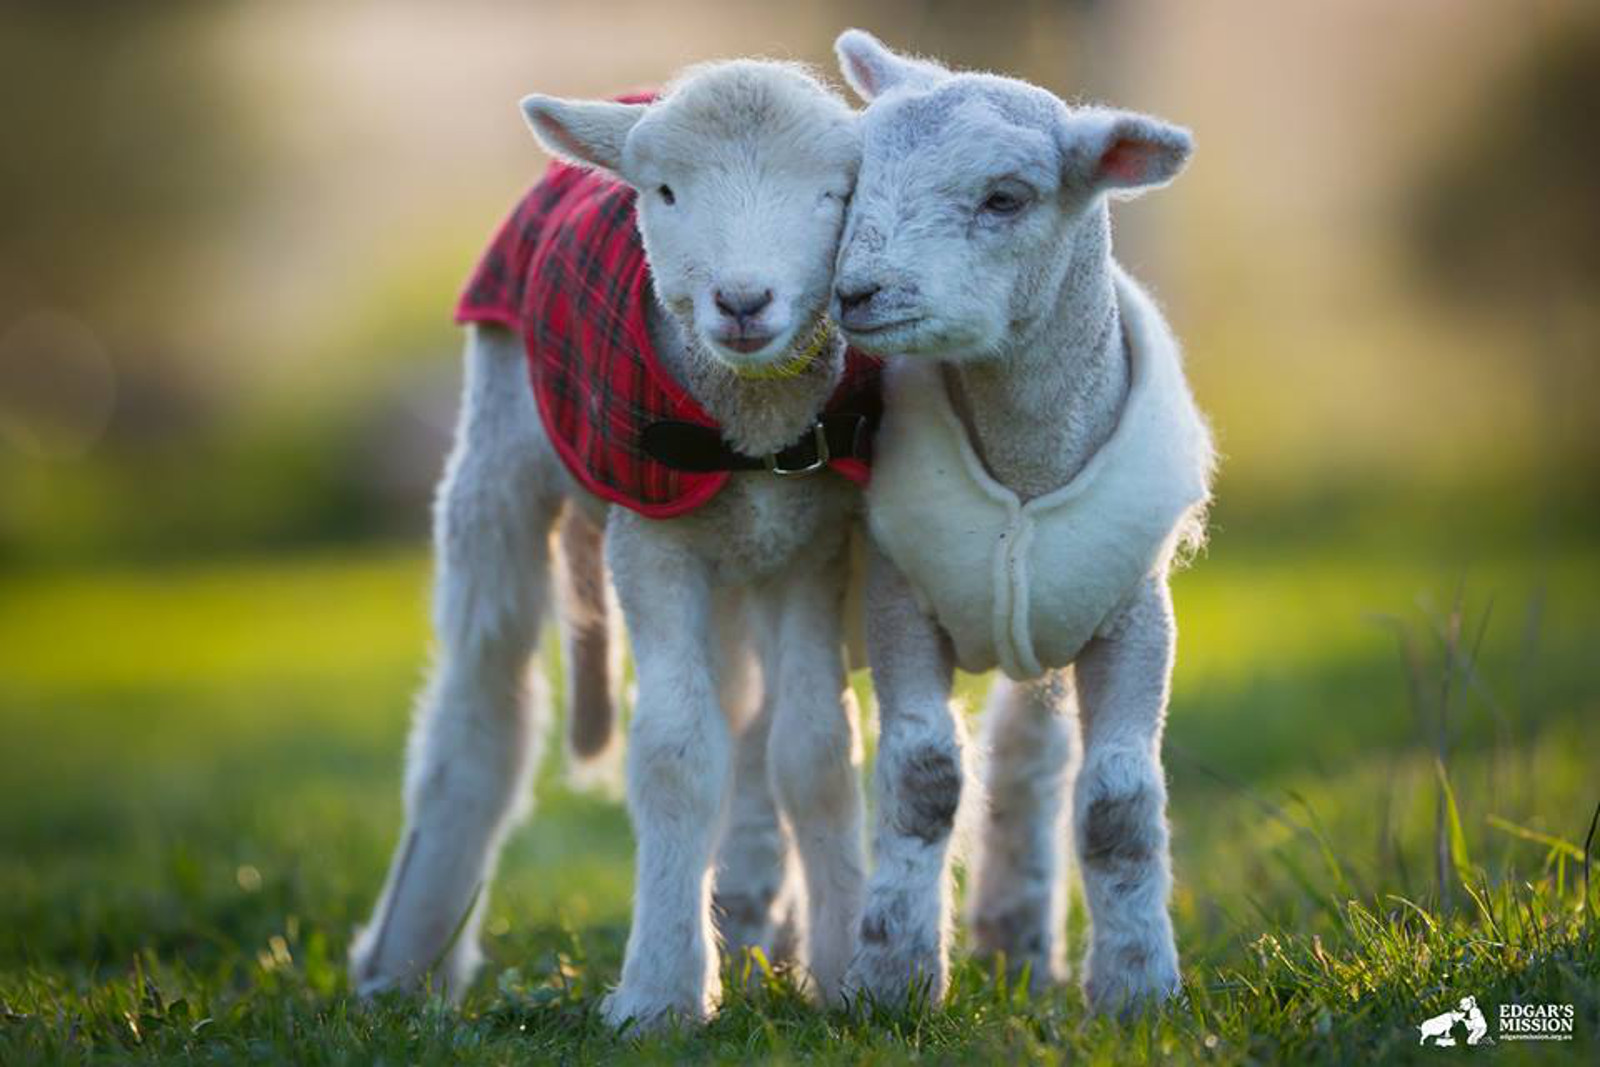 What We Can Learn About Parenting From Farm Animals